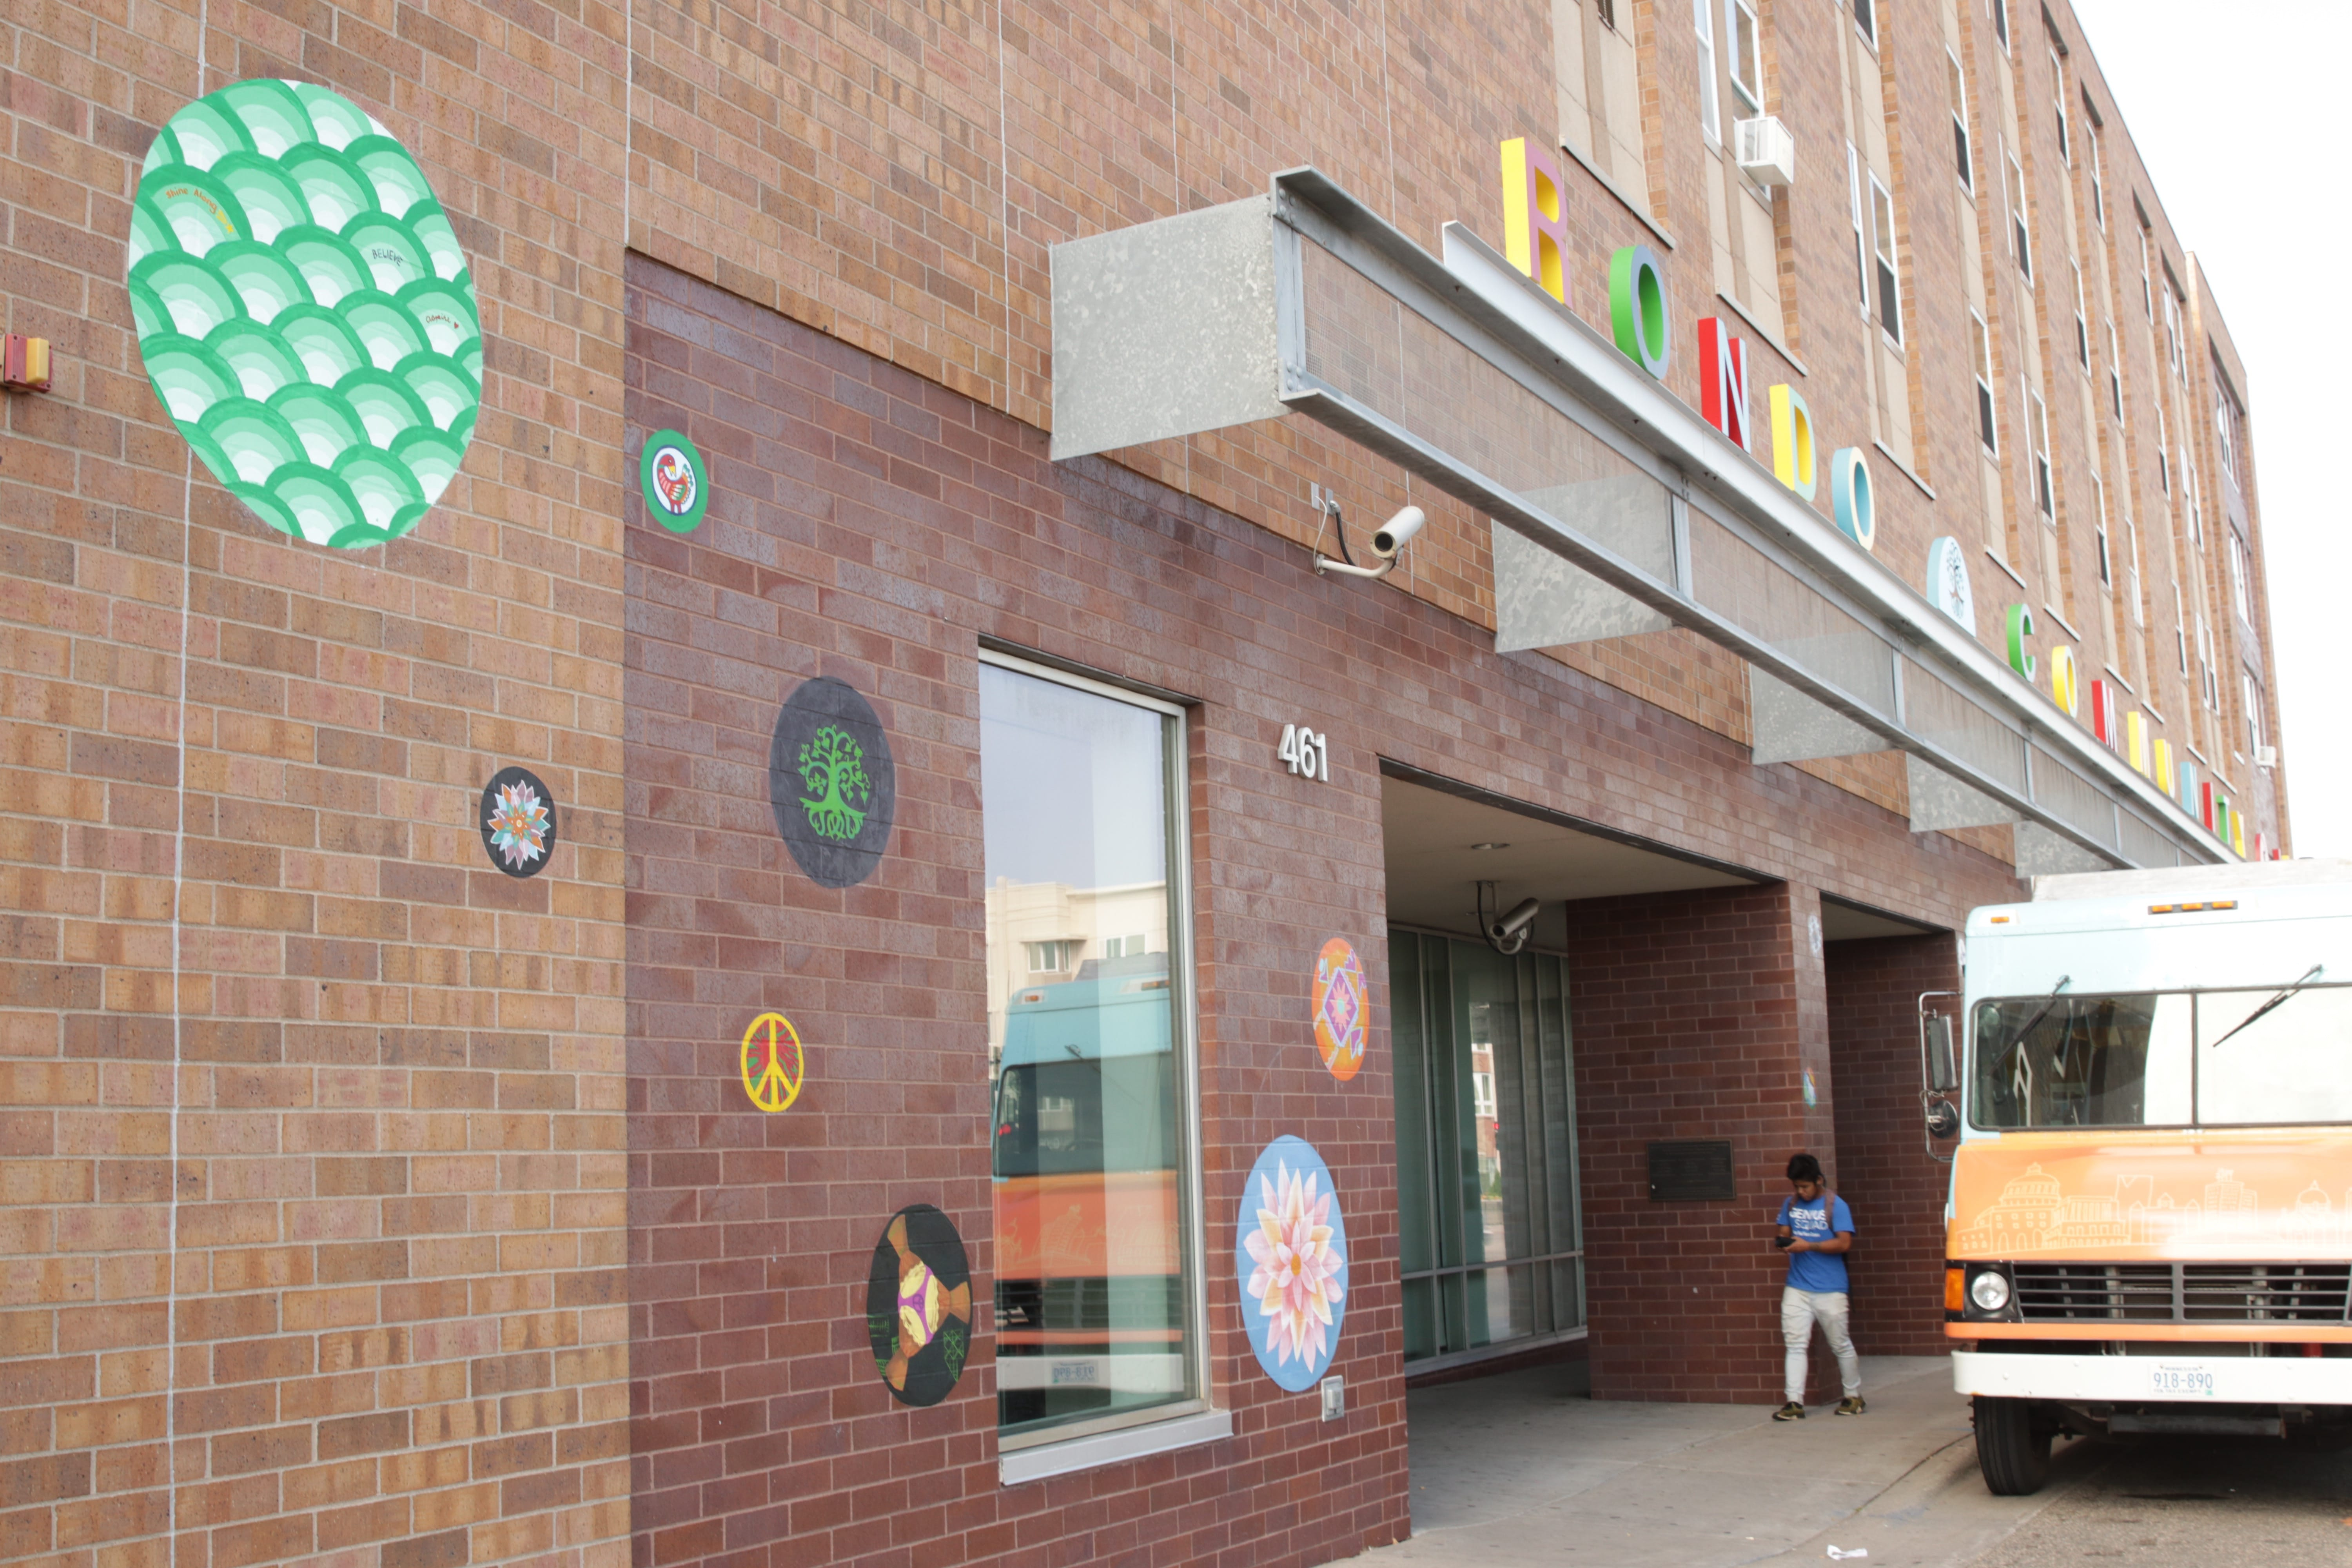 Andres had previously attached circles of assorted sizes and designs to the east wall of Rondo Library along Dale Street.